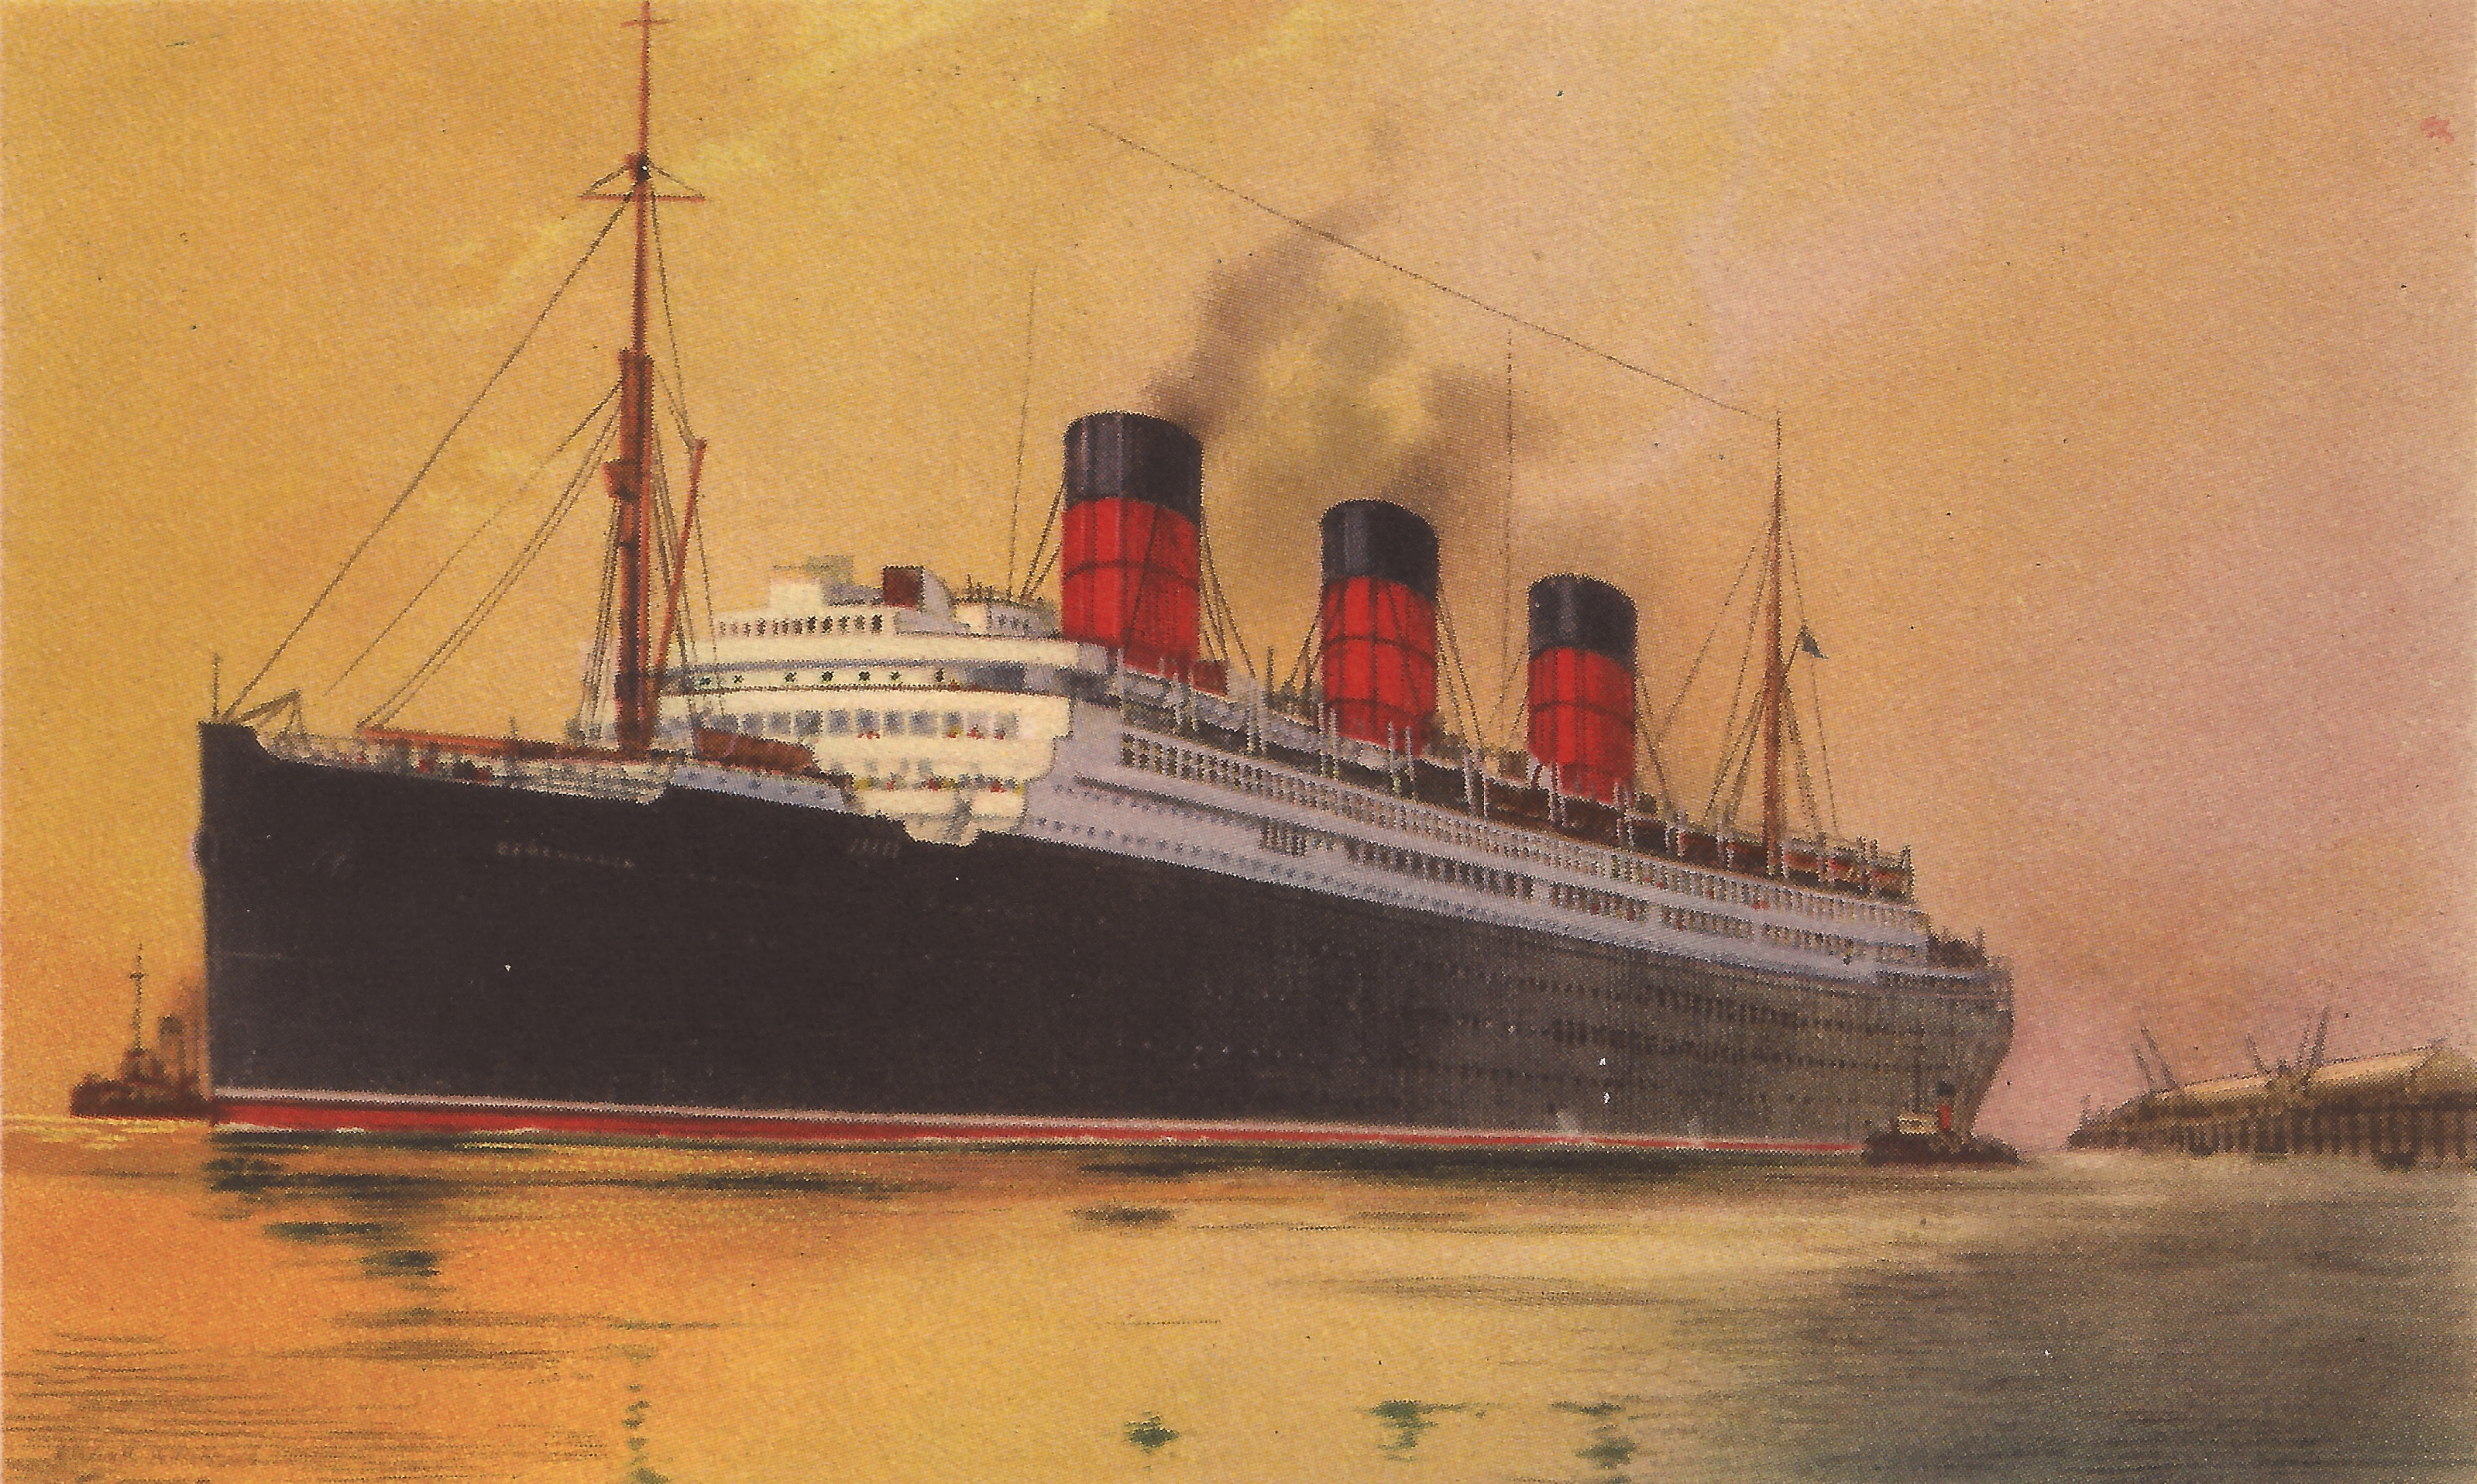 Postcard of the Cunard White Star